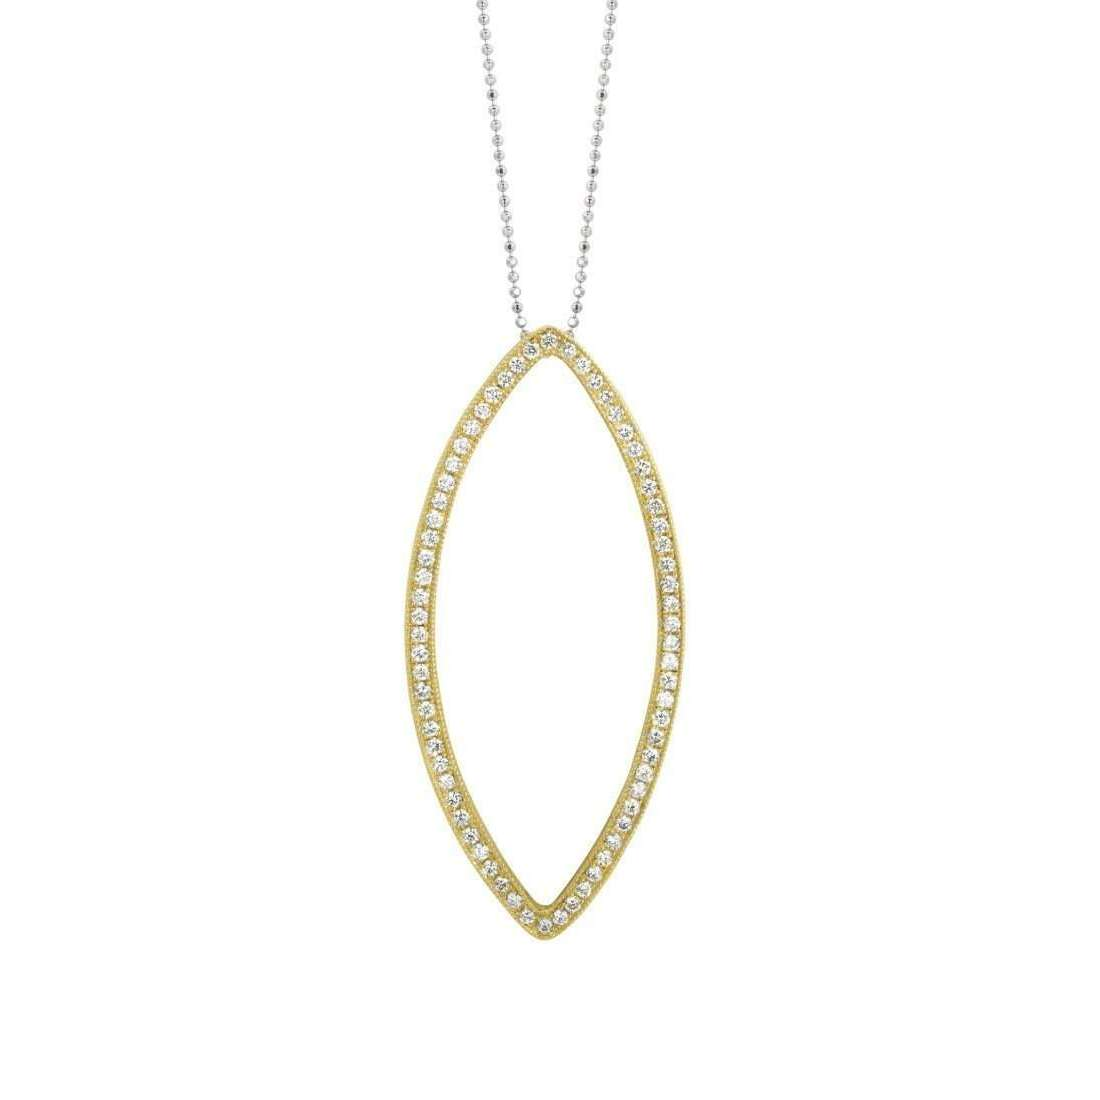 Edie 14kt Yellow Gold Paved Eye Necklace with White Diamonds-Julez Bryant-JewelStreet US